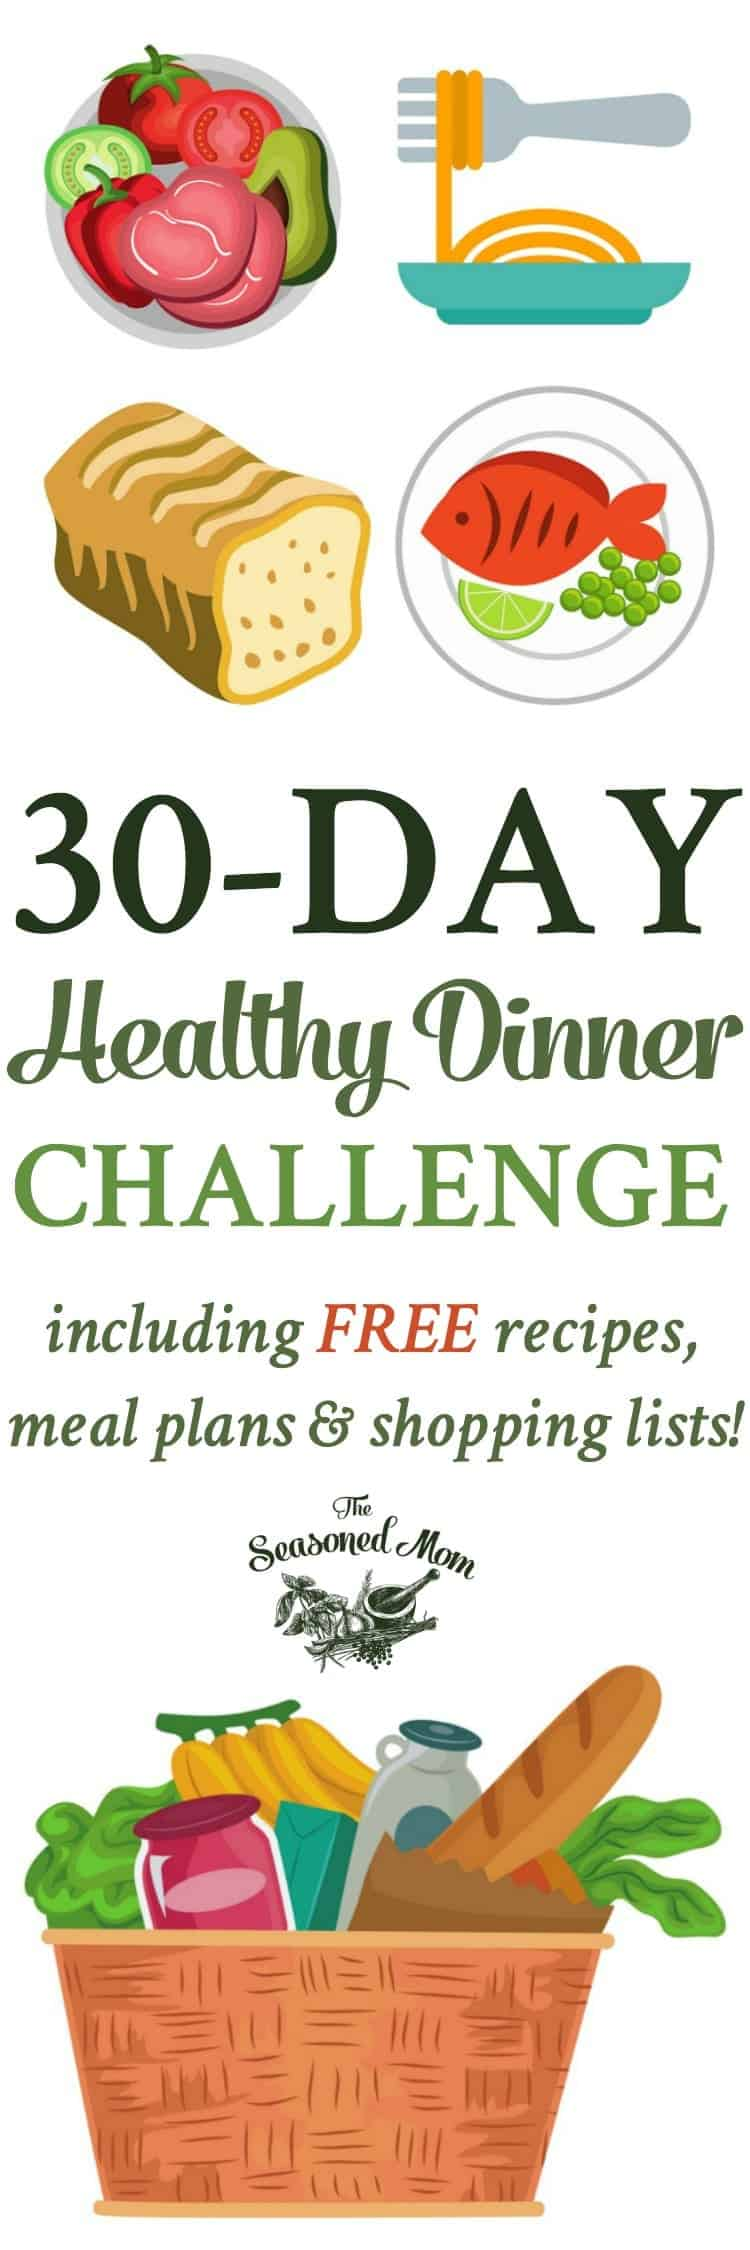 30-Day Healthy Dinner Challenge! Meal Prep Recipes   Meal Prep for the Week   Dinner Ideas   Dinner Recipes   Healthy Dinner Recipes   Healthy Recipes